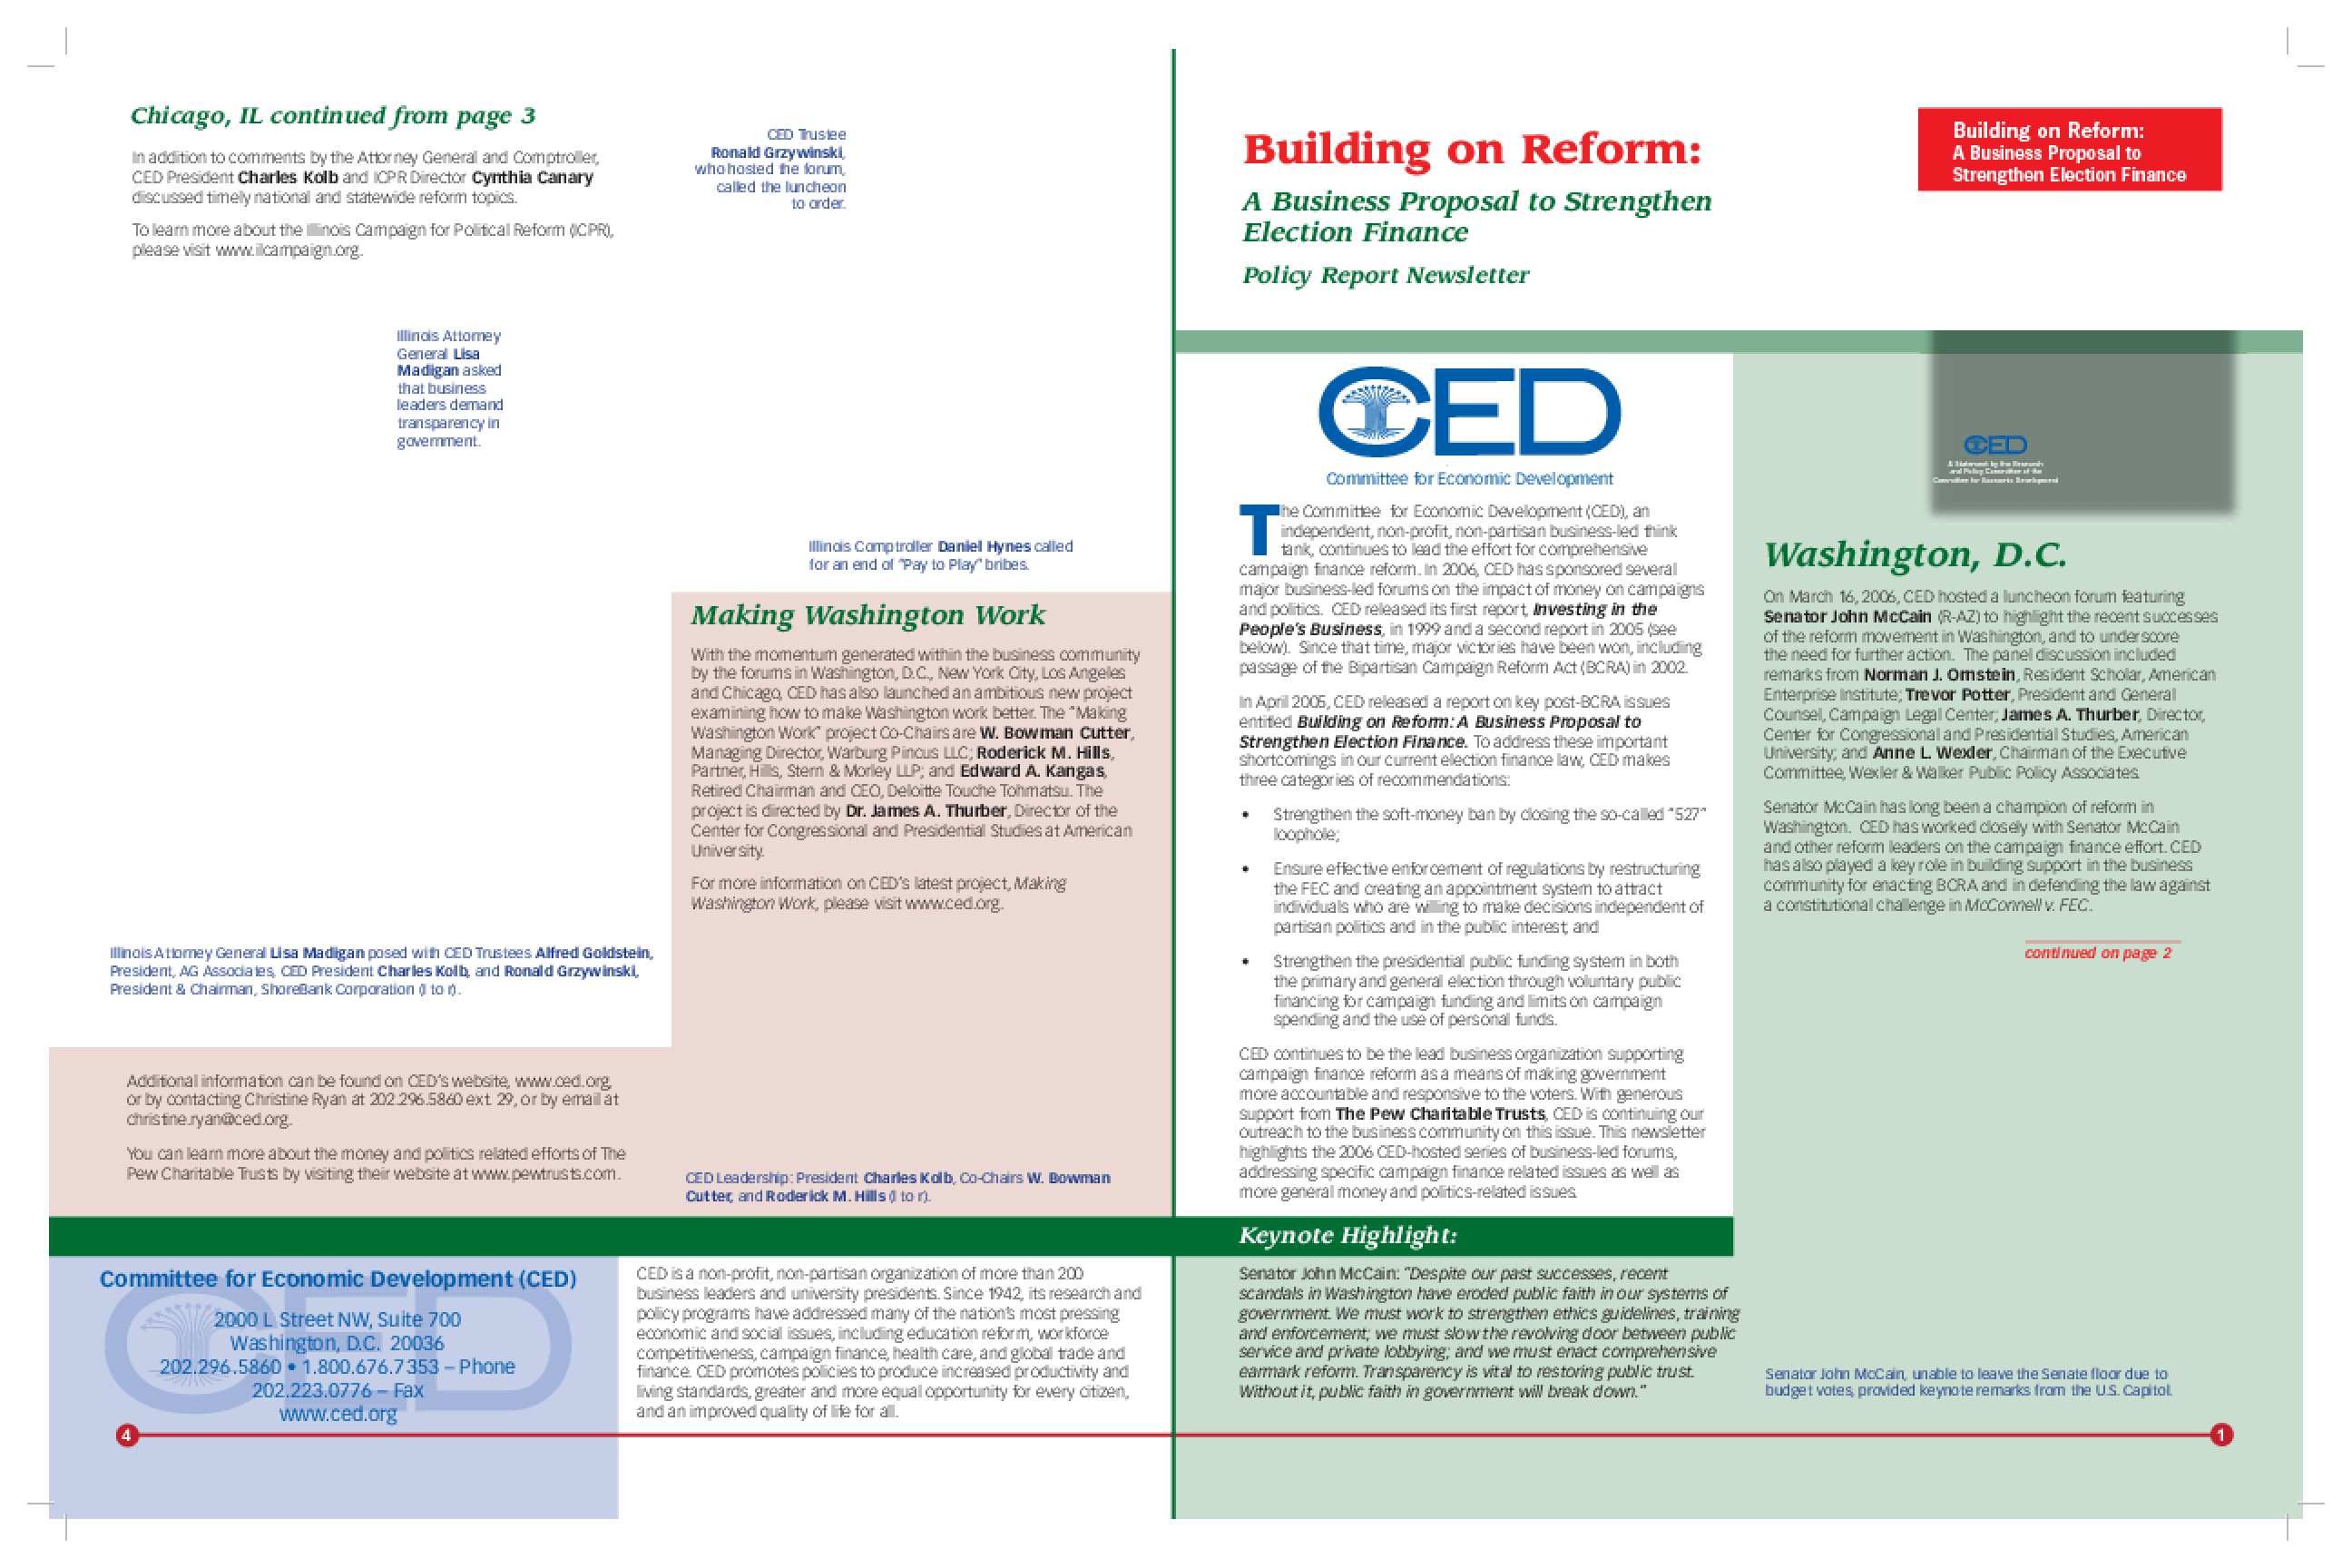 Building on Reform: A Business Proposal to Strengthen Election Finance - Policy Report Newsletter, Fall 2006